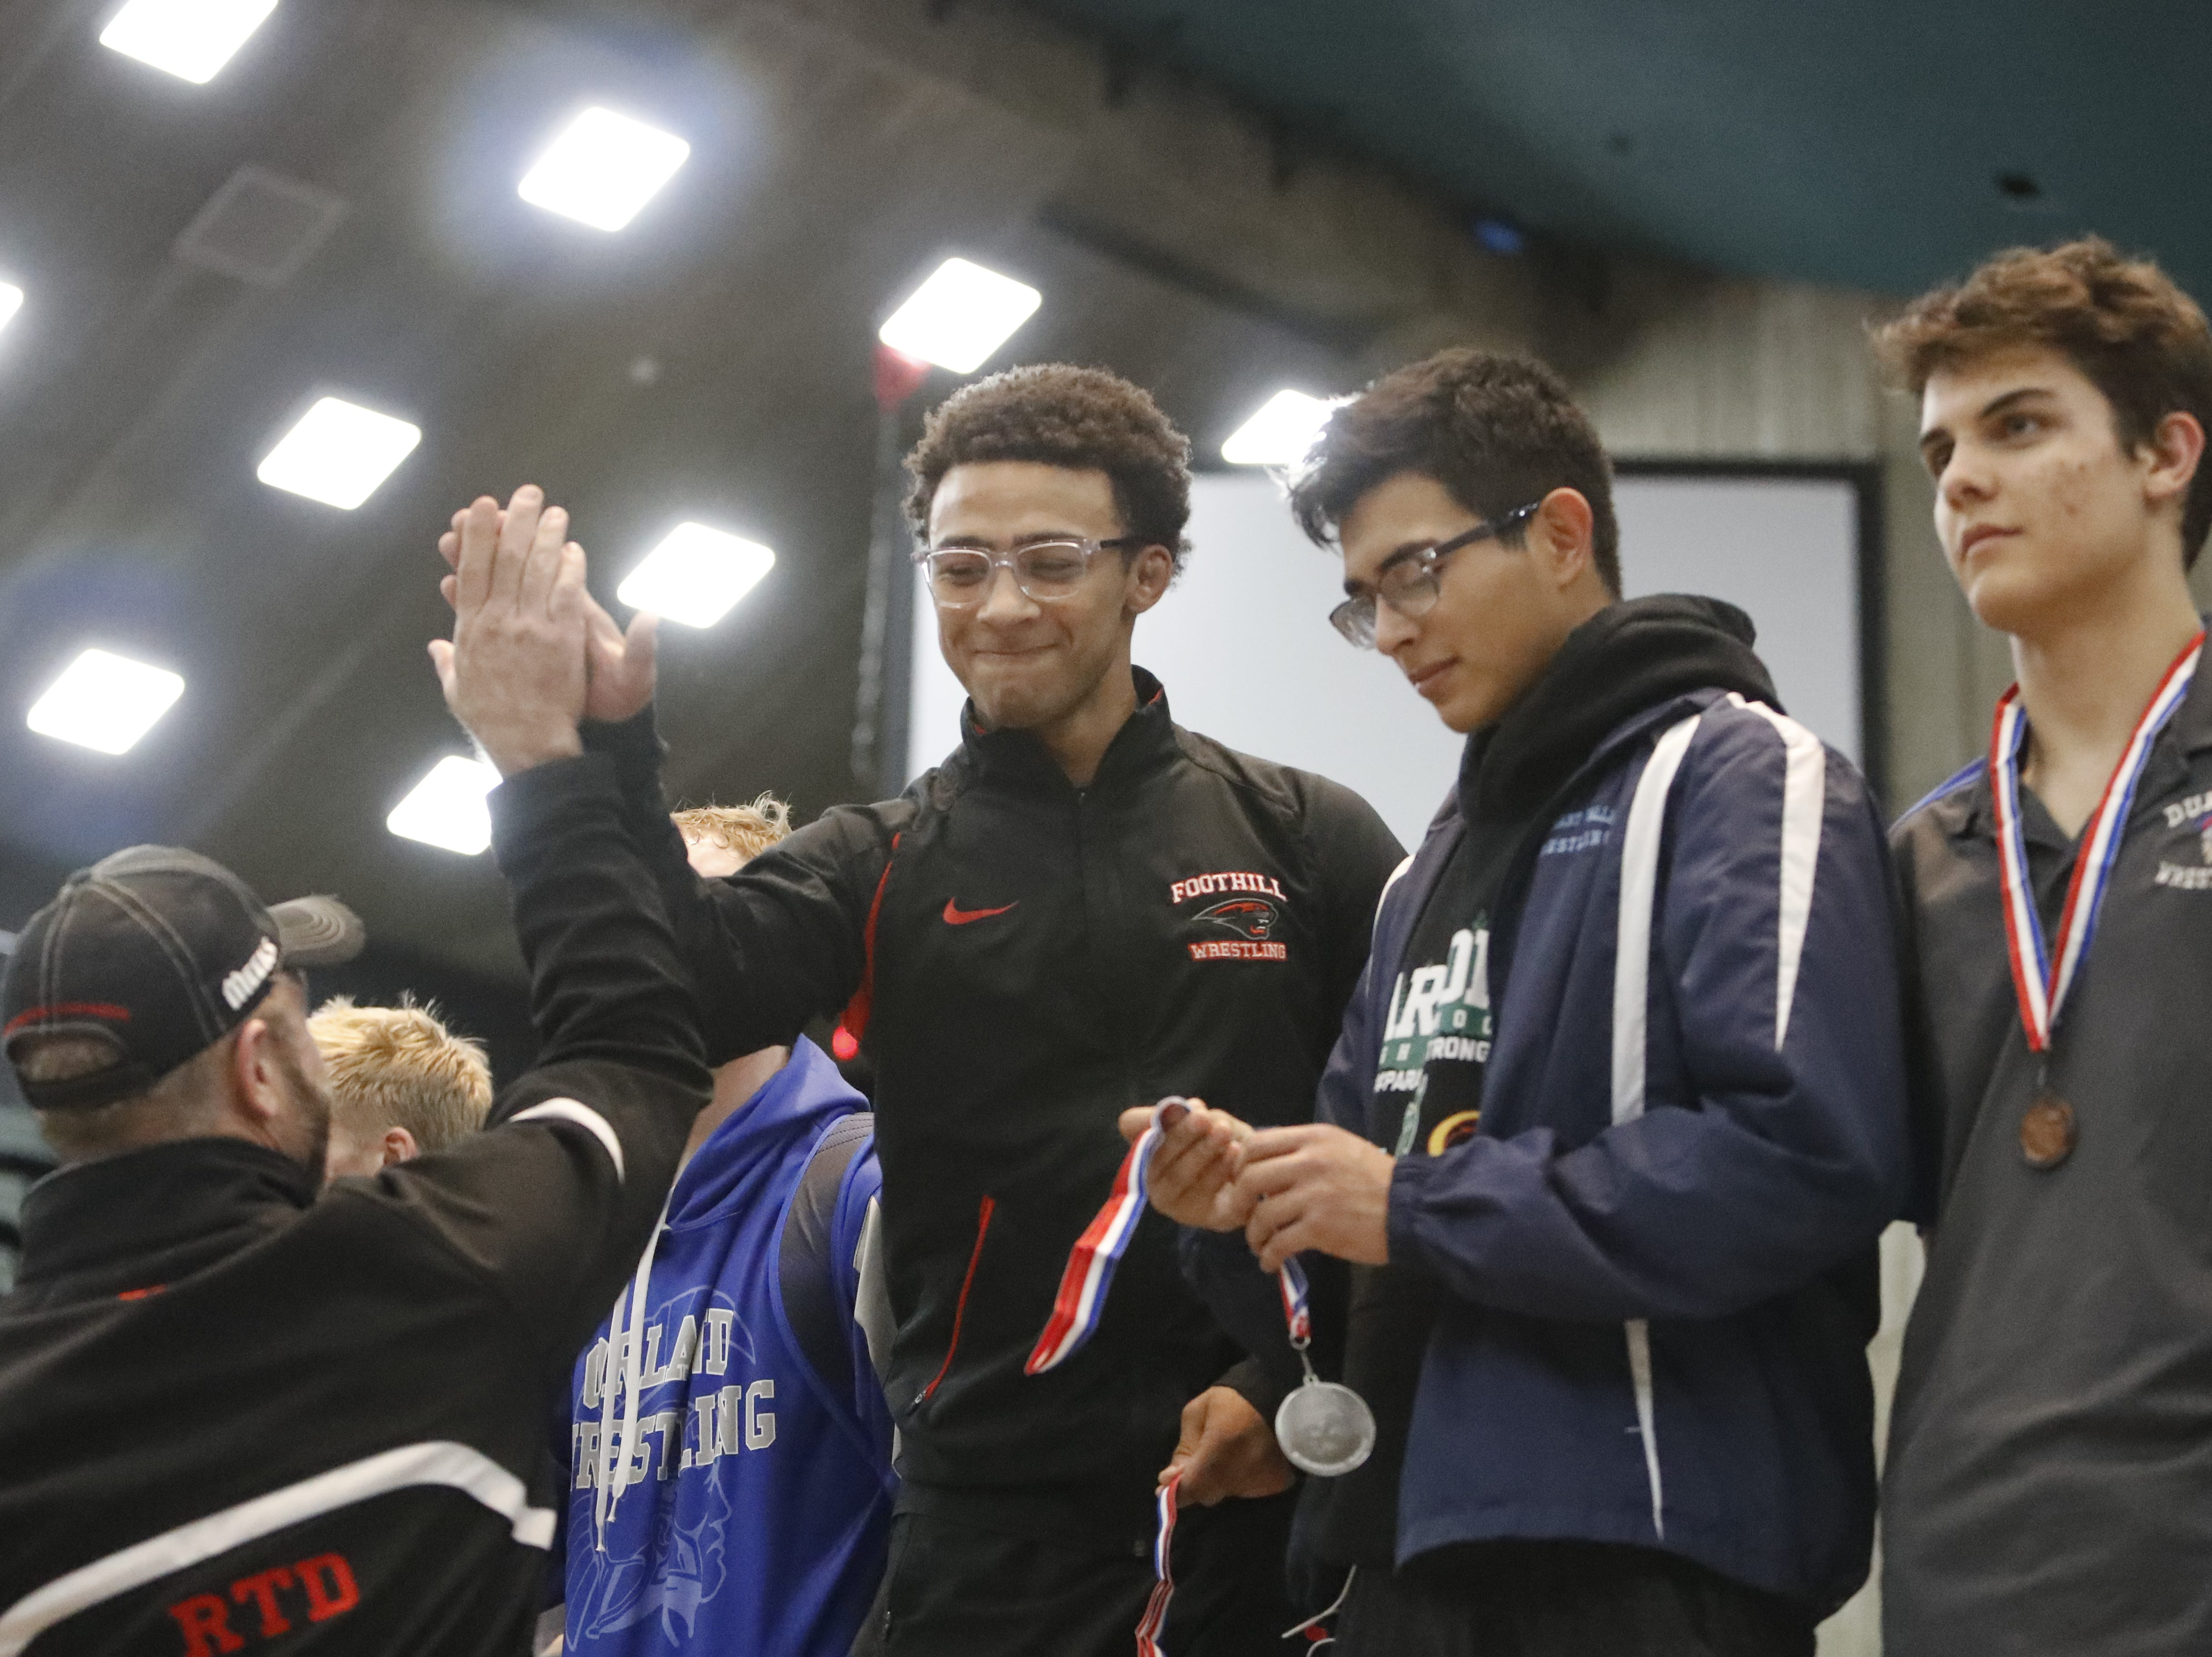 Foothill wrestler Earnest Wilson high-fives a coach from the podium after taking first place in the 145-pound weight class at Northern Section championships on Friday, Feb. 15, at the Redding Civic Auditorium.